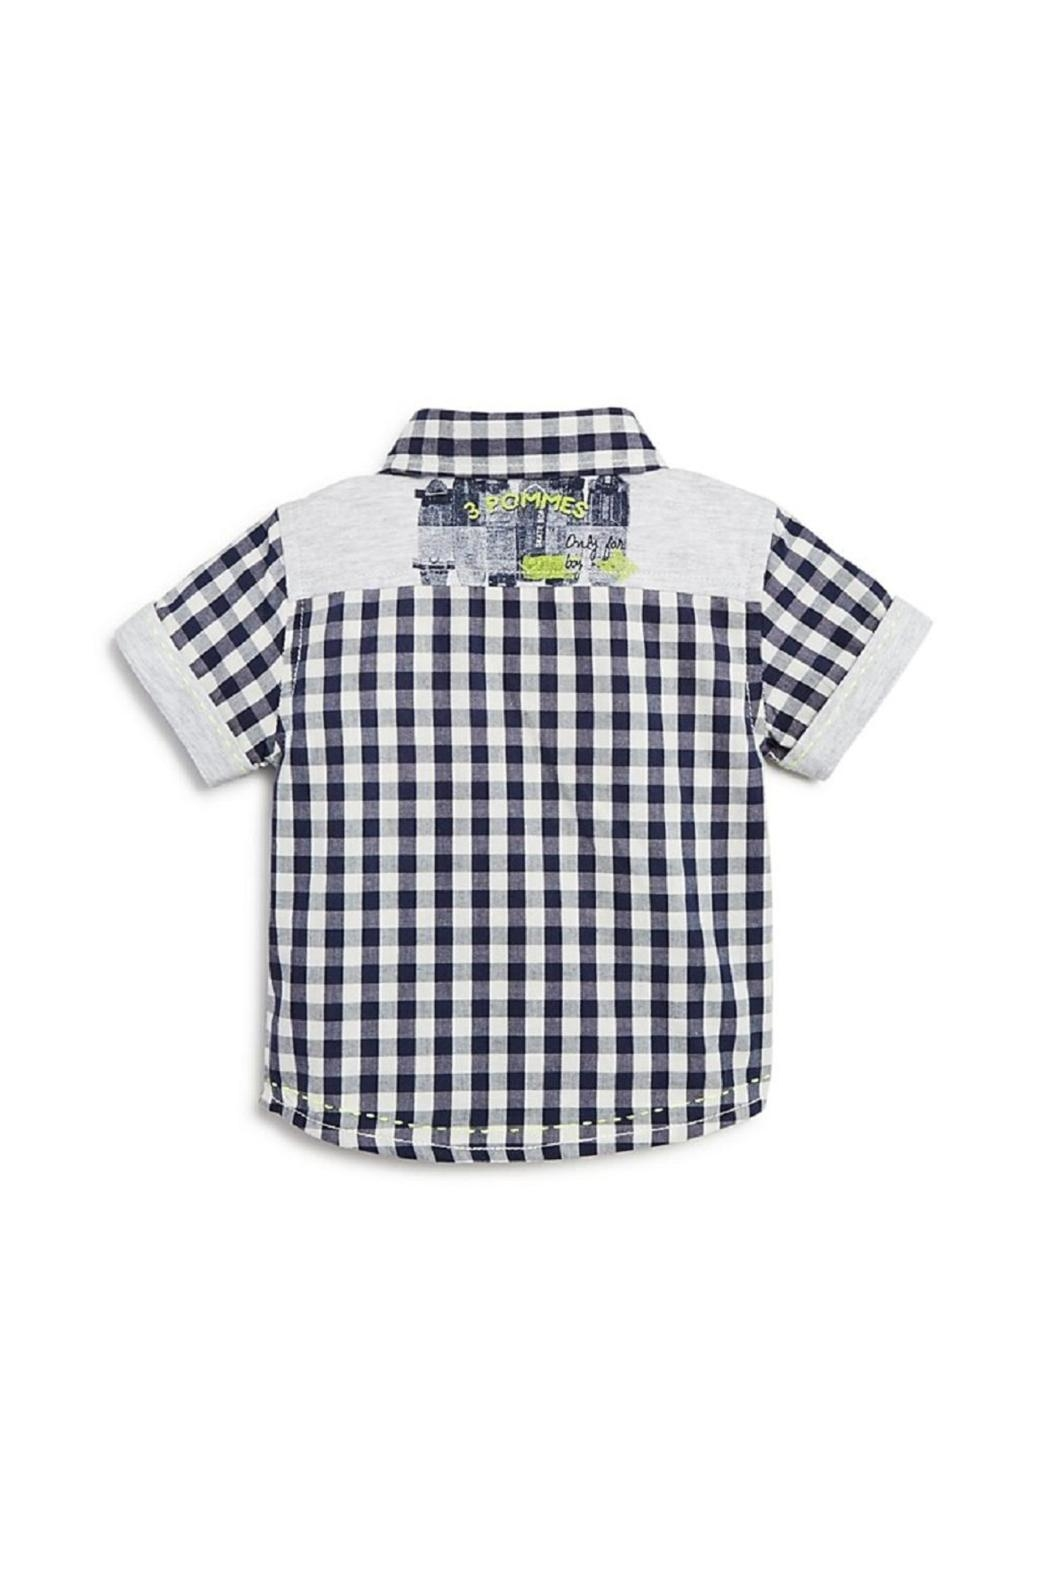 3 Pommes Gingham Short-Sleeve Shirt - Front Full Image